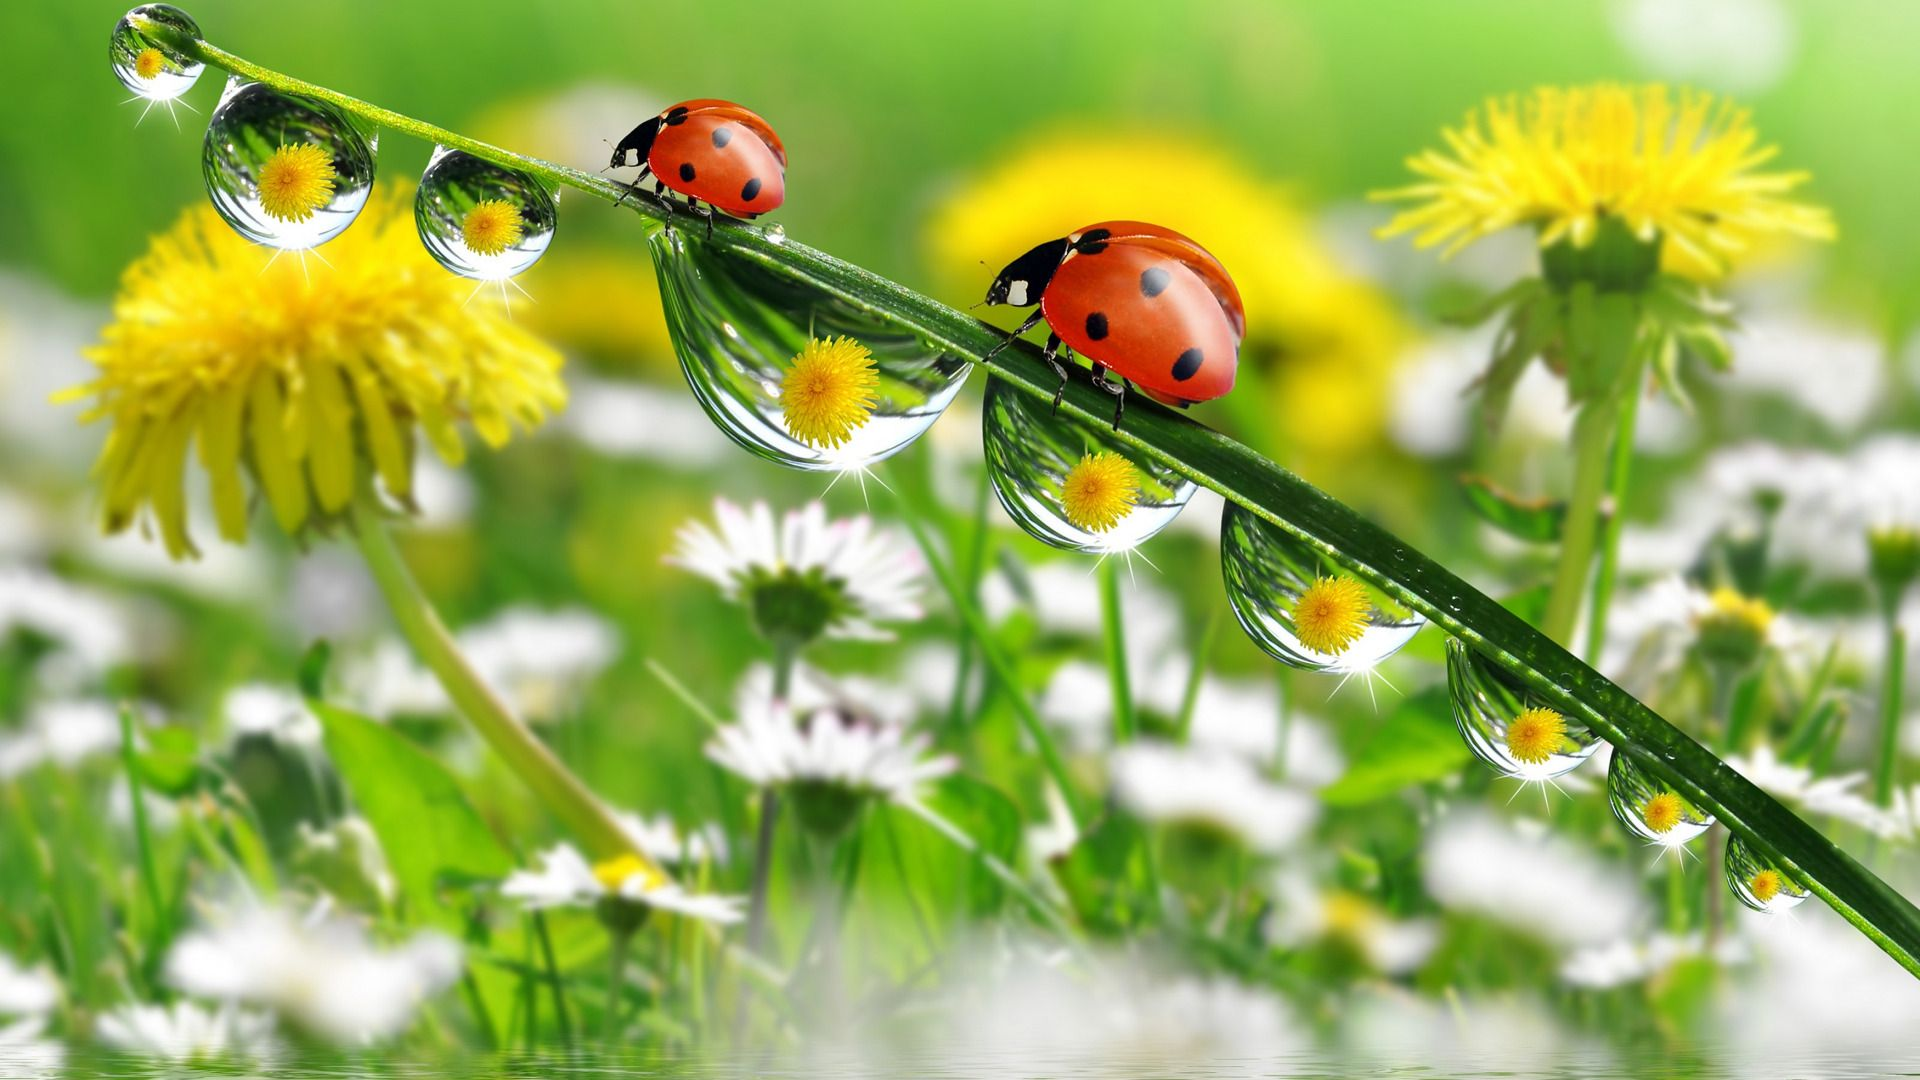 Images Of Dandelions And Ladybirds